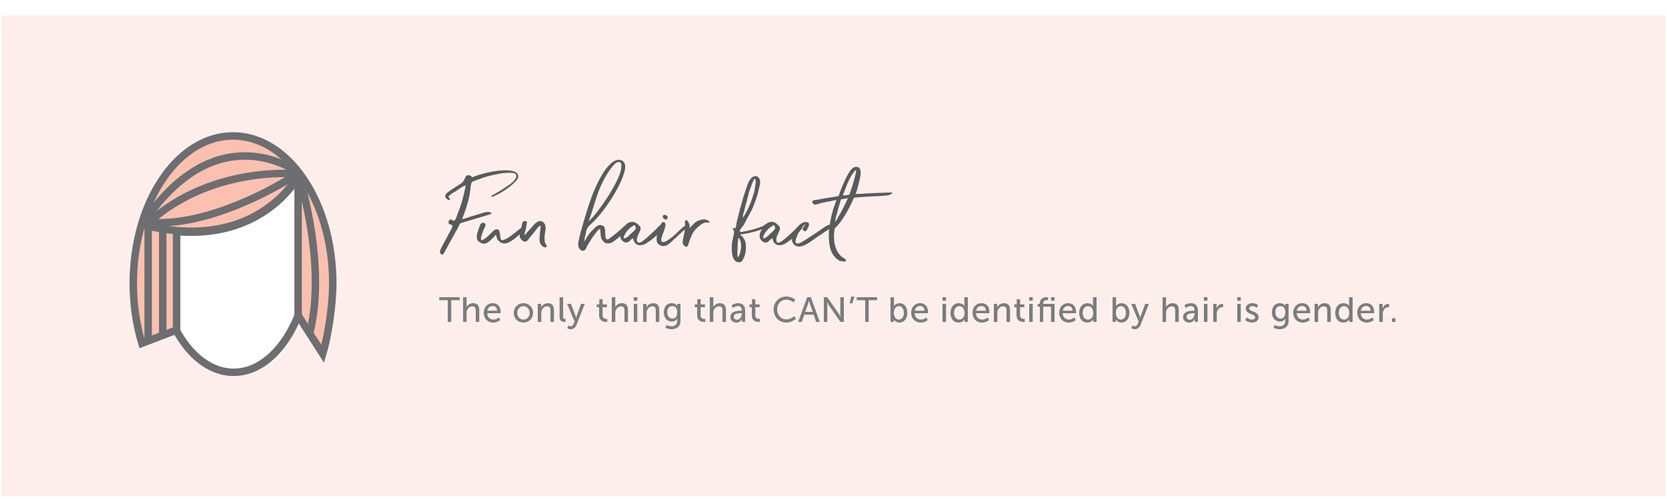 Fun Hair Fact - The only thing that CAN'T be identified by hair is gender